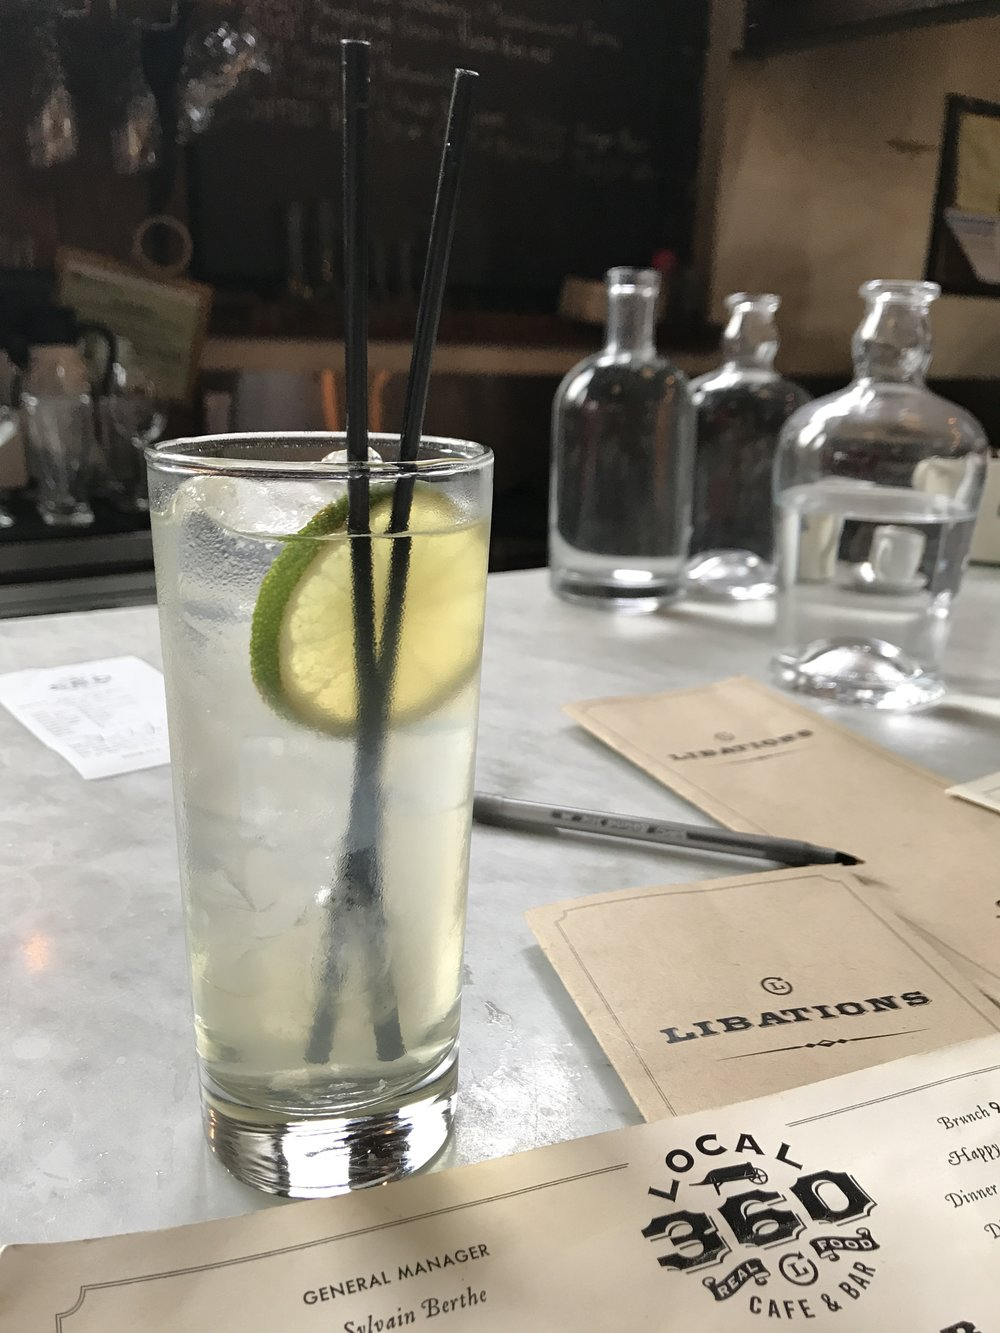 If you visit Seattle, you have to go to  Local 360 .  The food is great, and all of the ingredients are locally sourced.  This drink was pretty amazing too, but I can't remember the name of it.  It had elderflower in it, which was very refreshing.